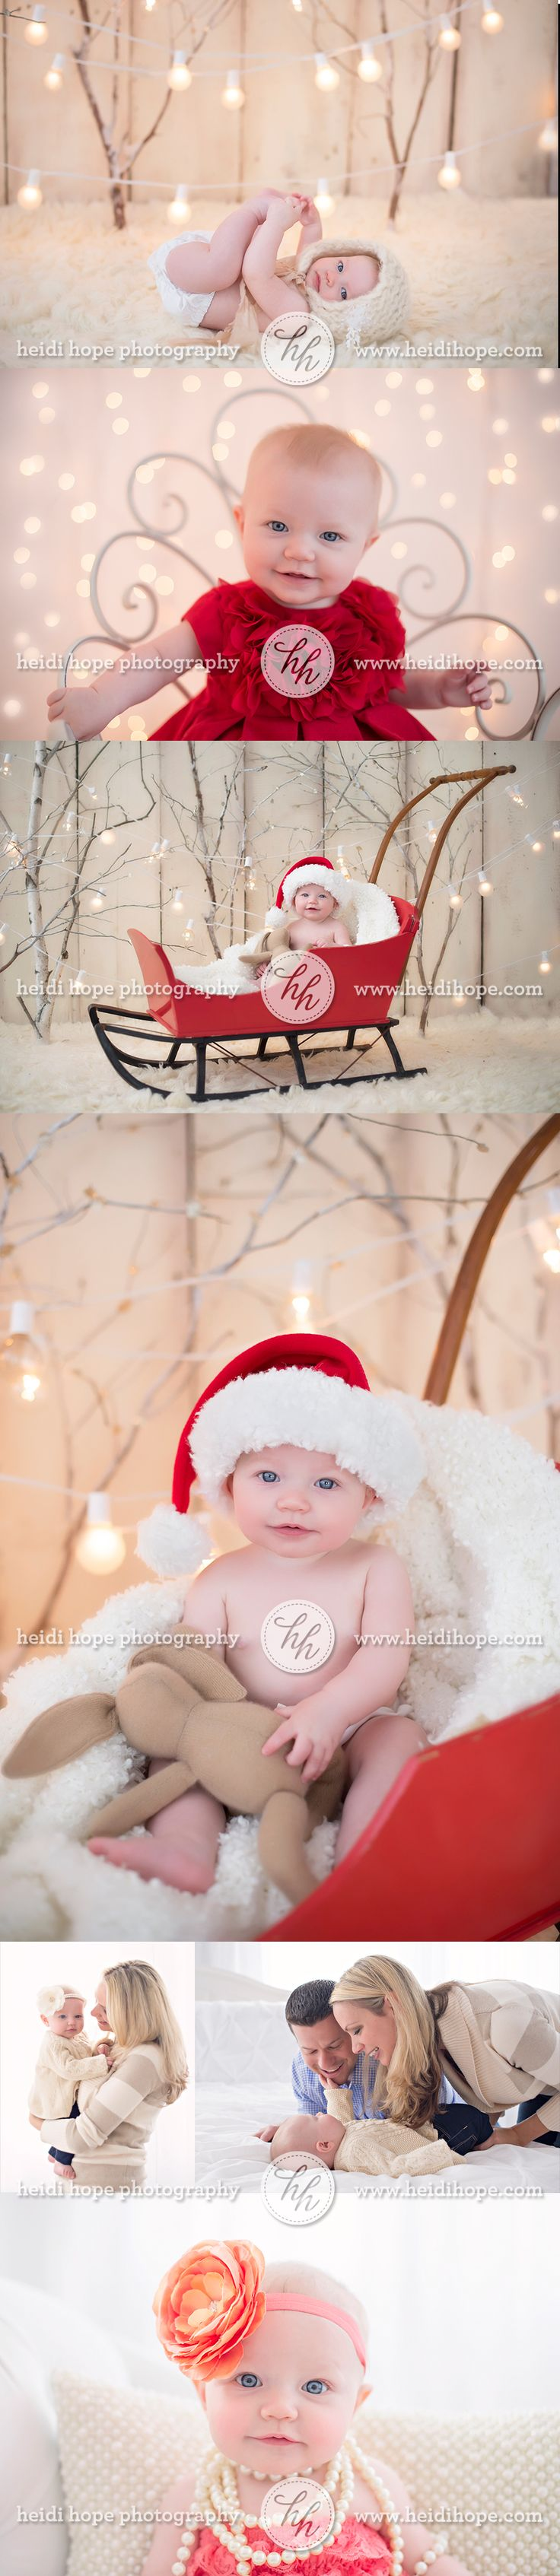 Baby A's christmas sneak peak! Soooo adorable.